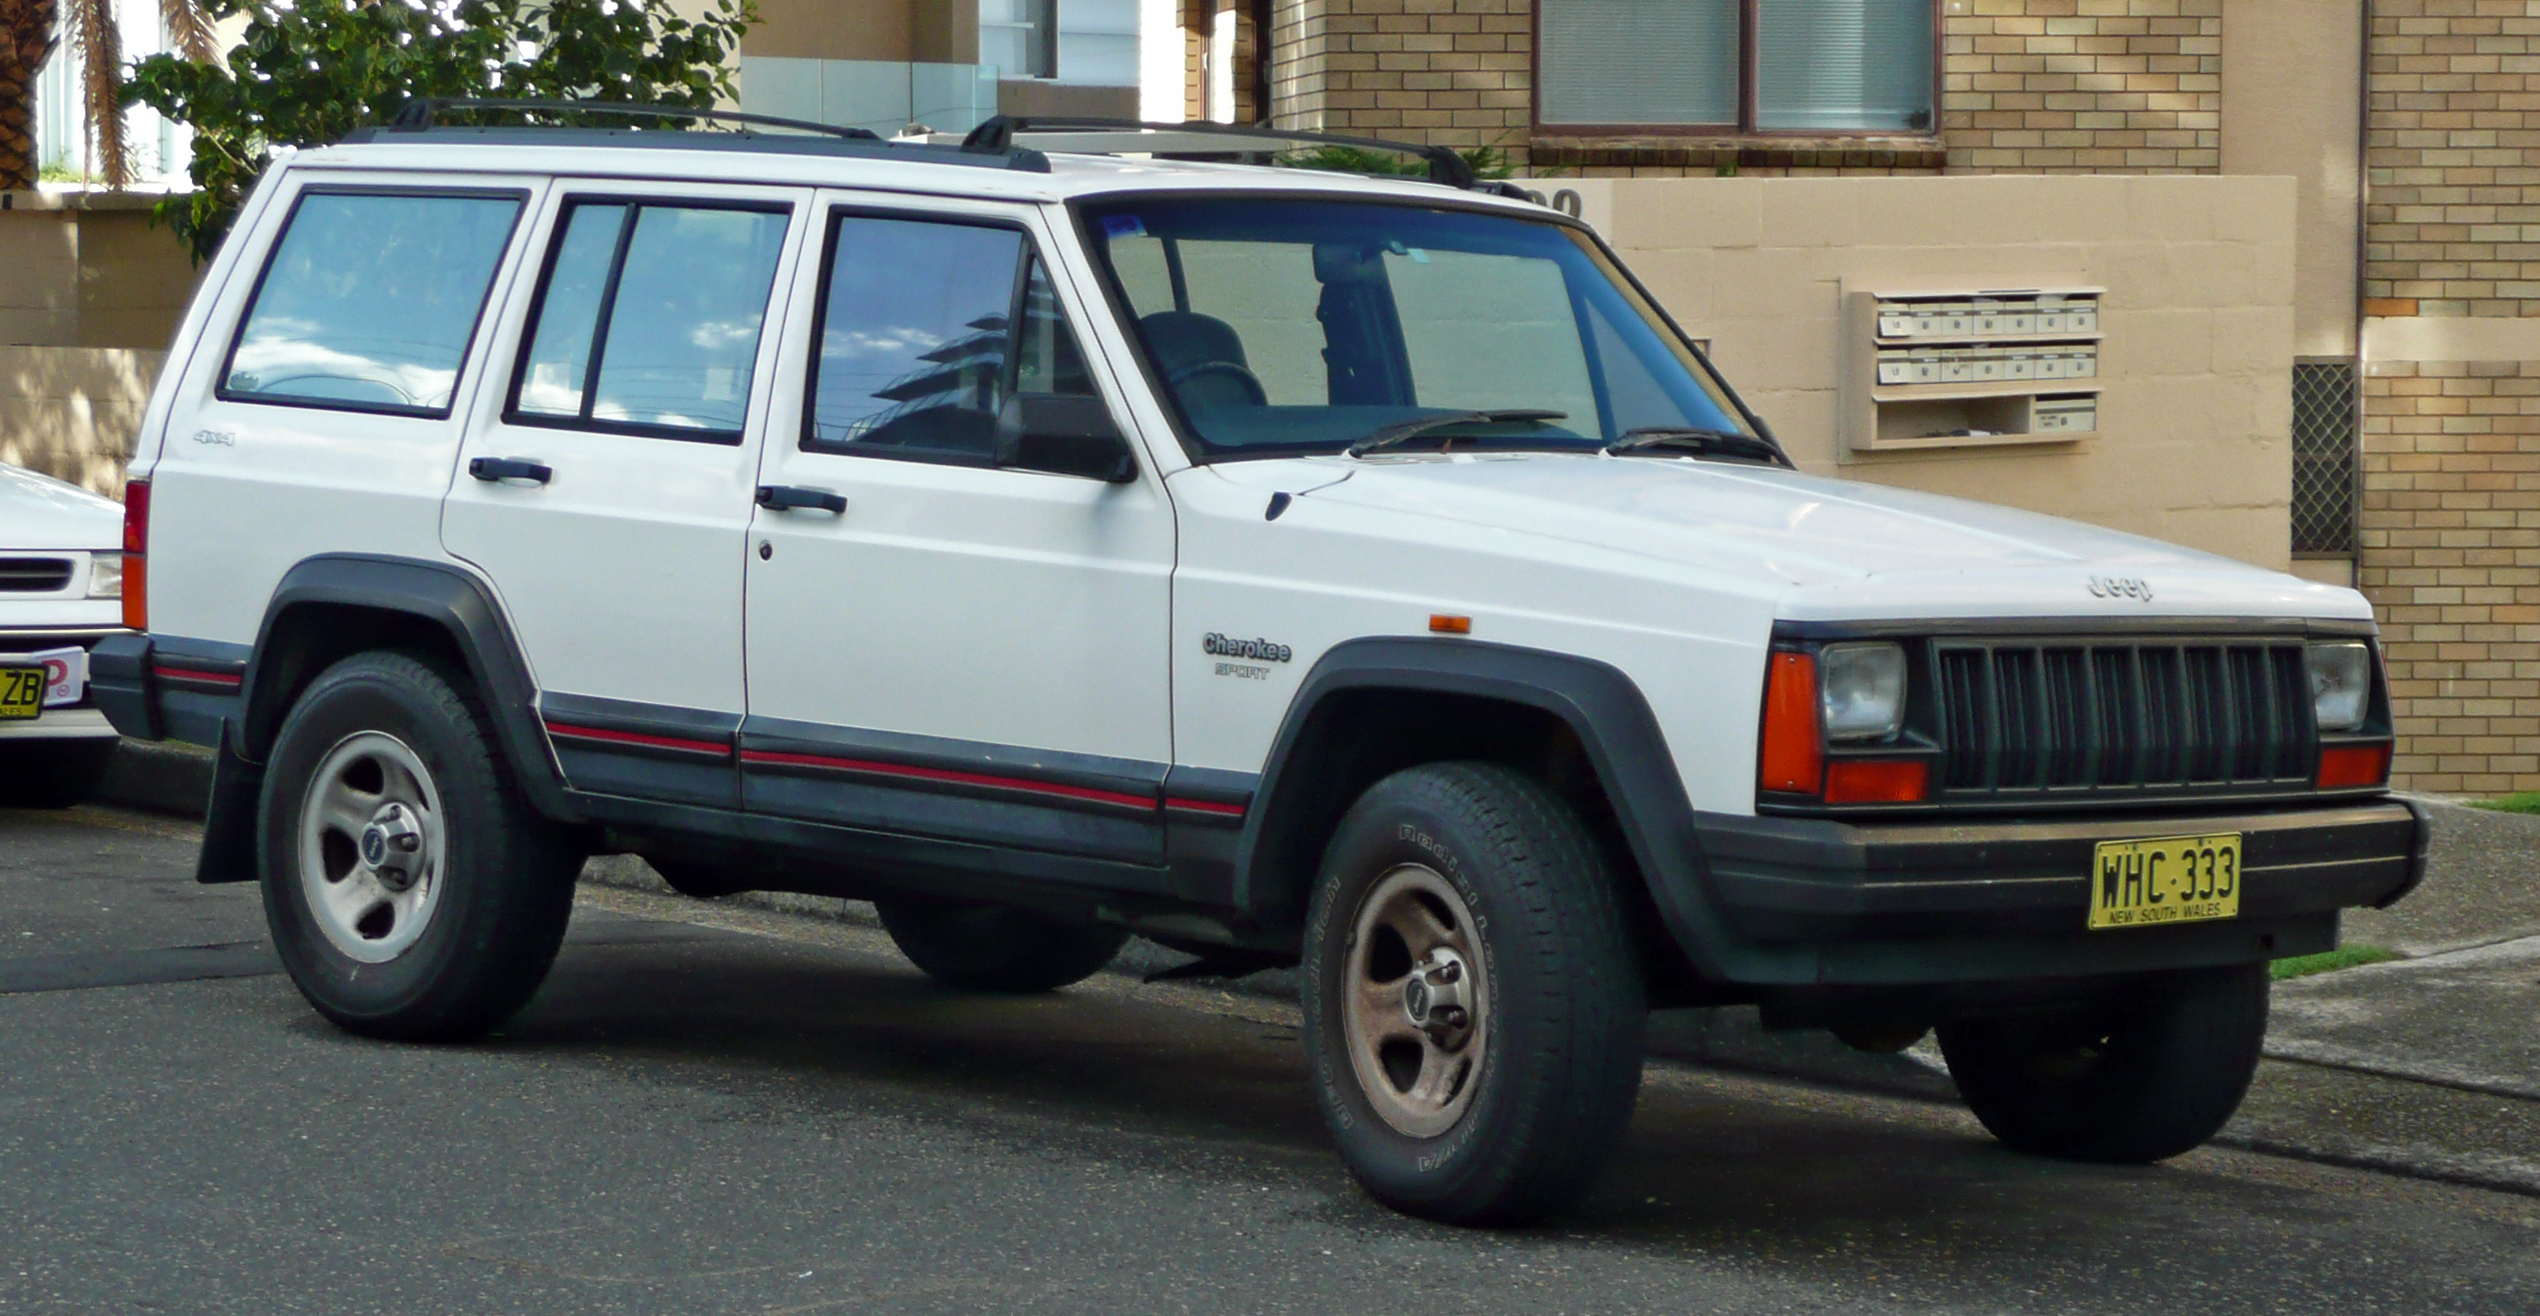 file:1994-1997 jeep cherokee (xj) sport 01 - wikimedia commons